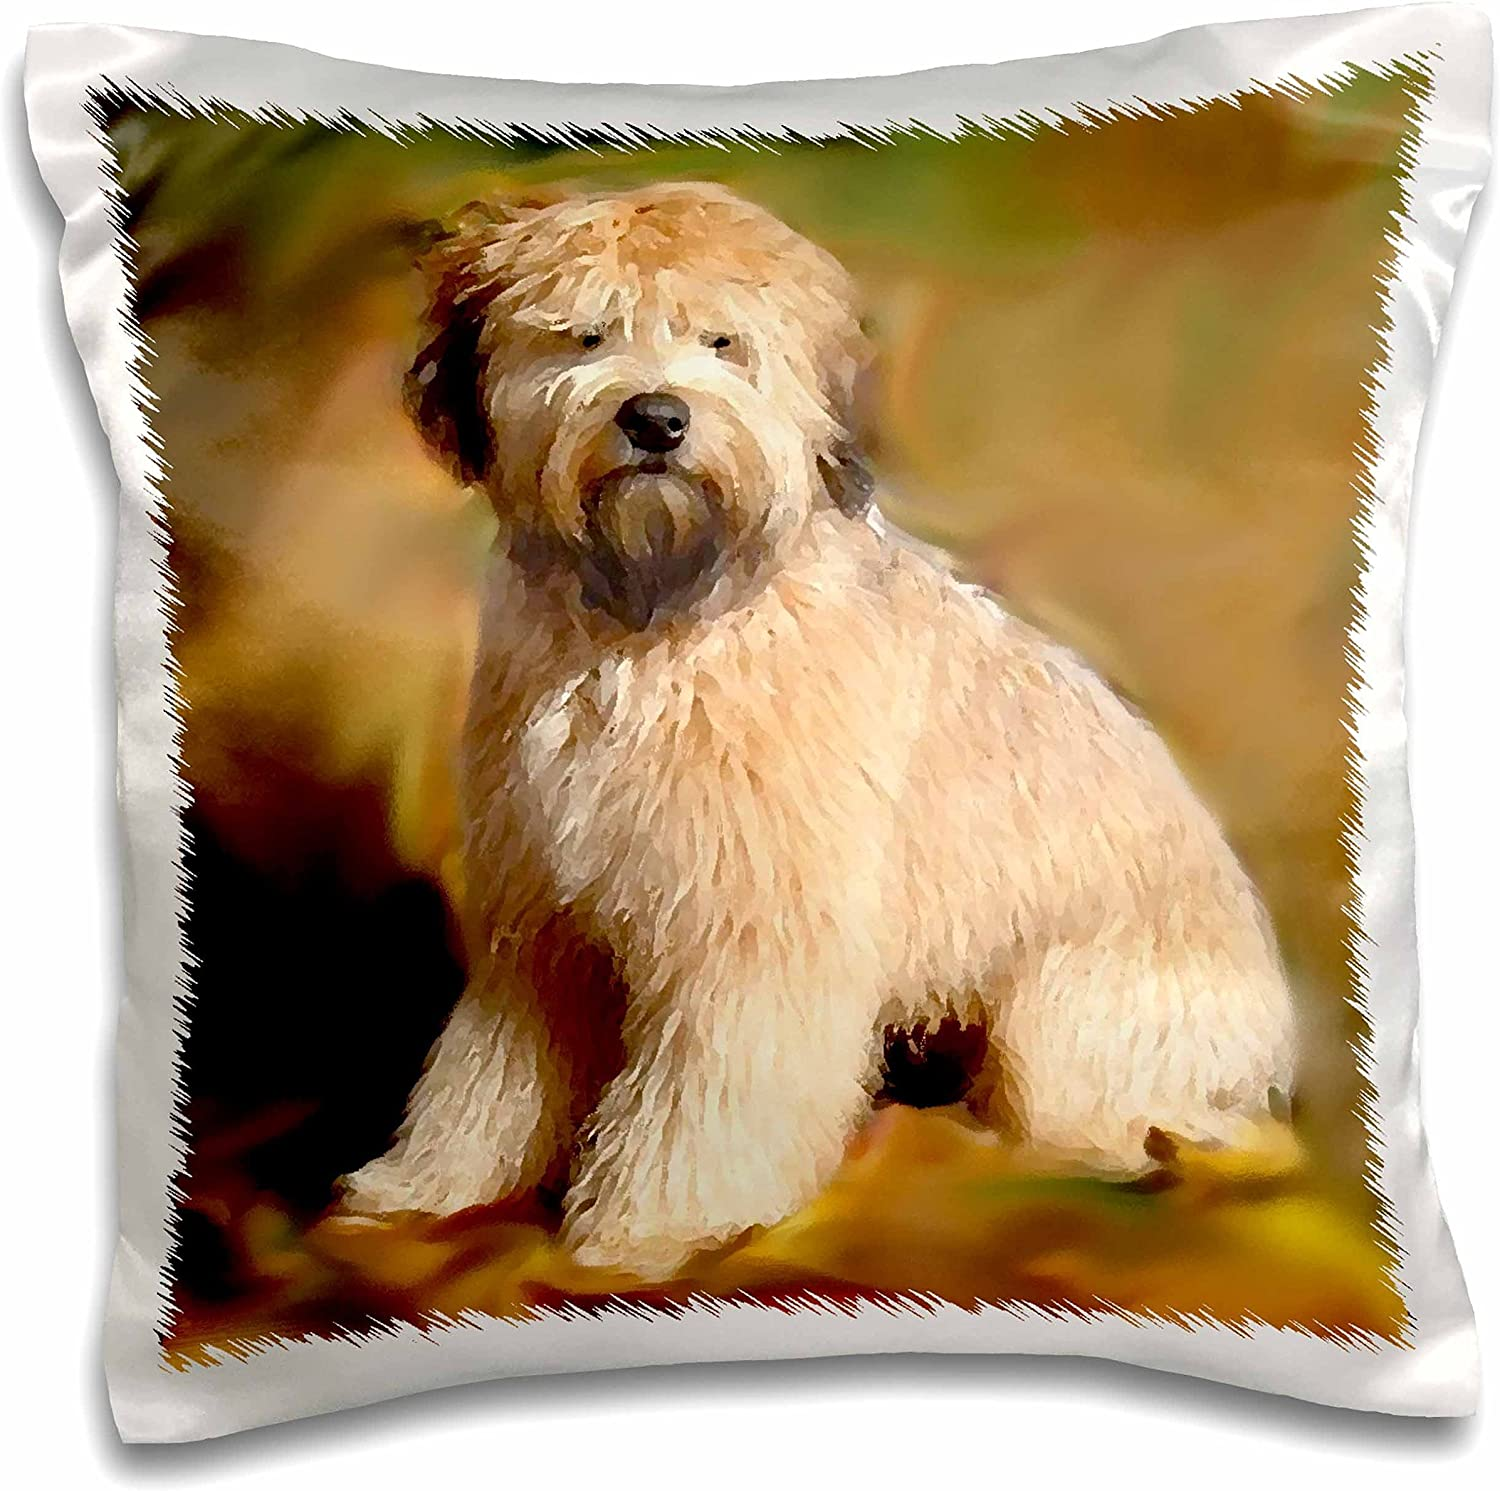 Amazon Com 3drose Pc 4256 1 Soft Coated Wheaten Terrier Pillow Case 16 By 16 White Arts Crafts Sewing